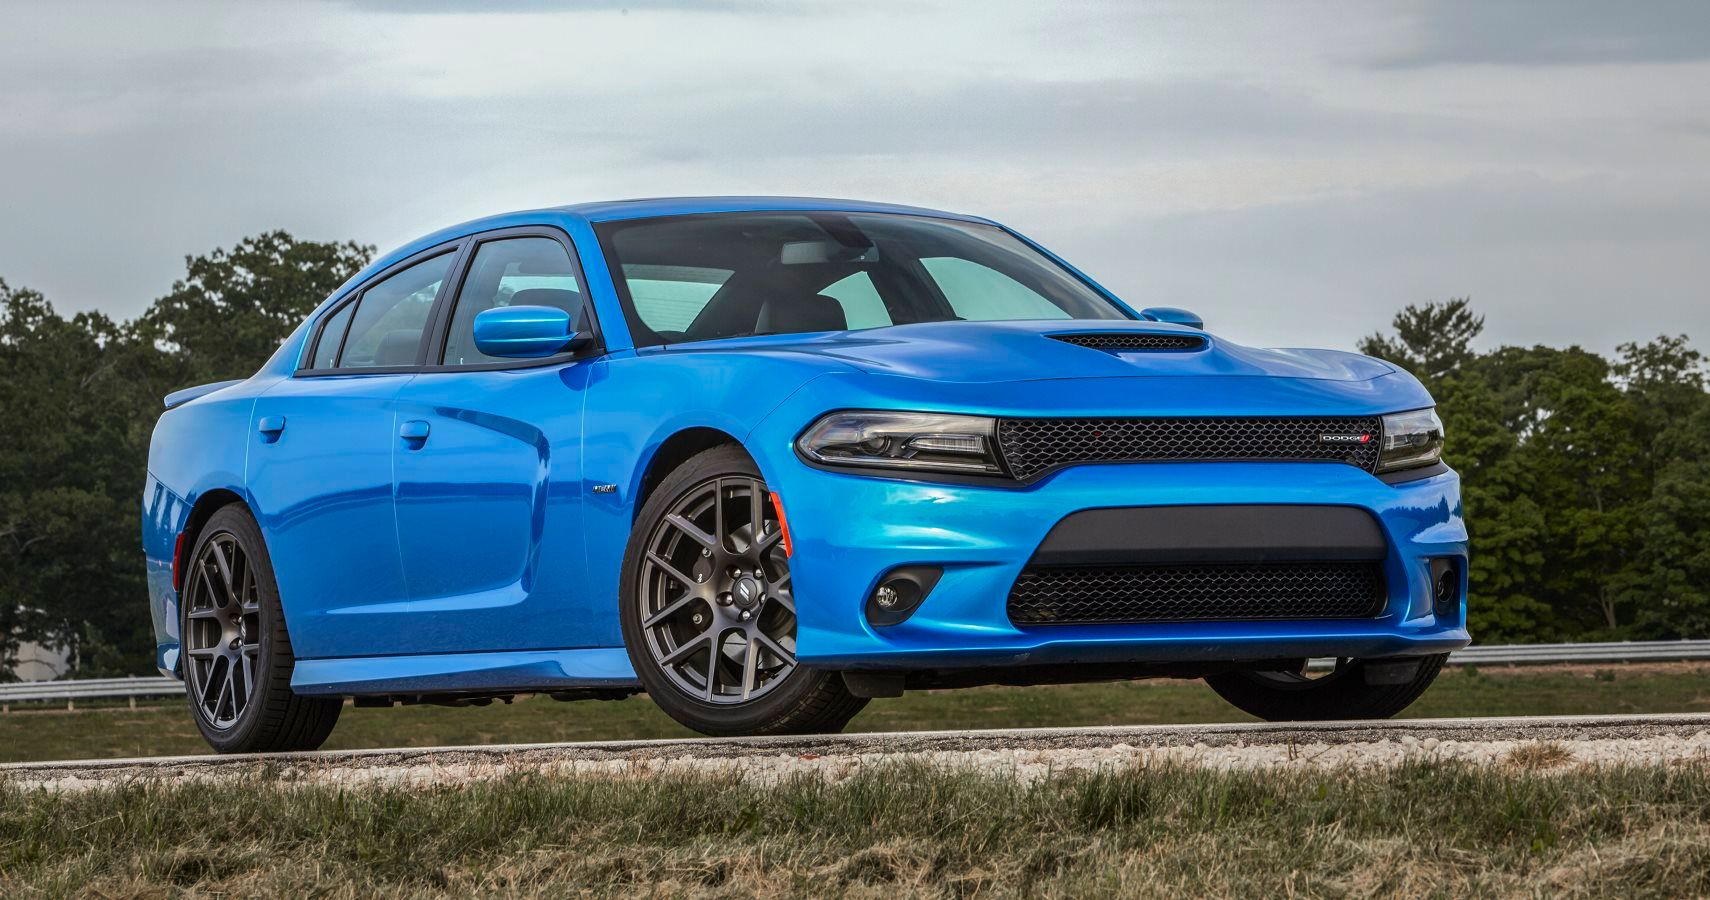 New Chargers And Challengers Have Dangerous Defect With